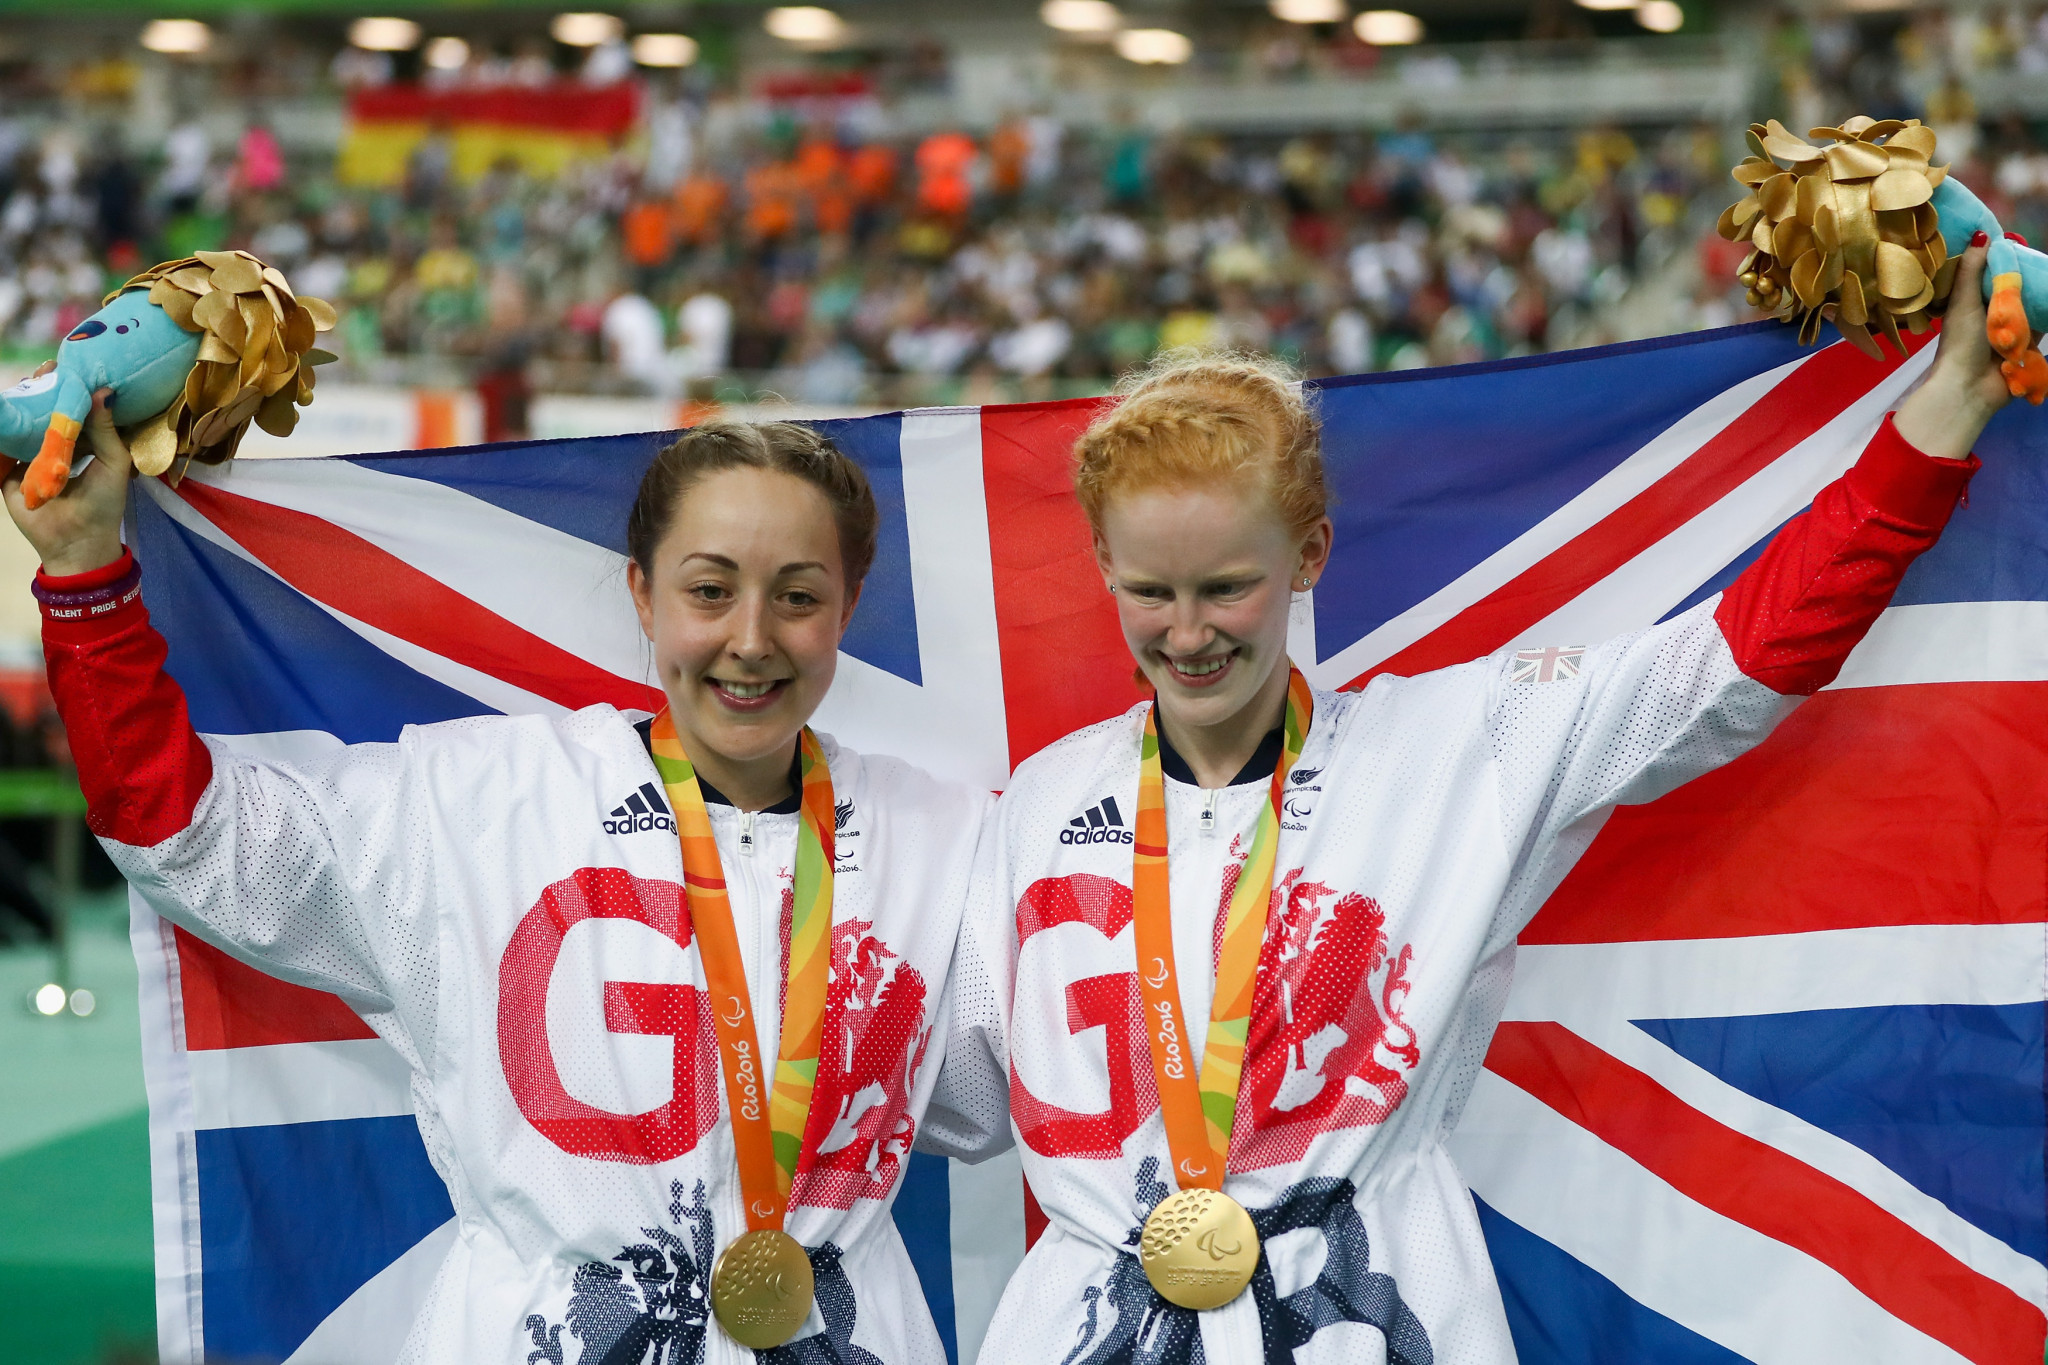 Sophie Thornhill, right, has retired from Para-cycling ©Getty Images